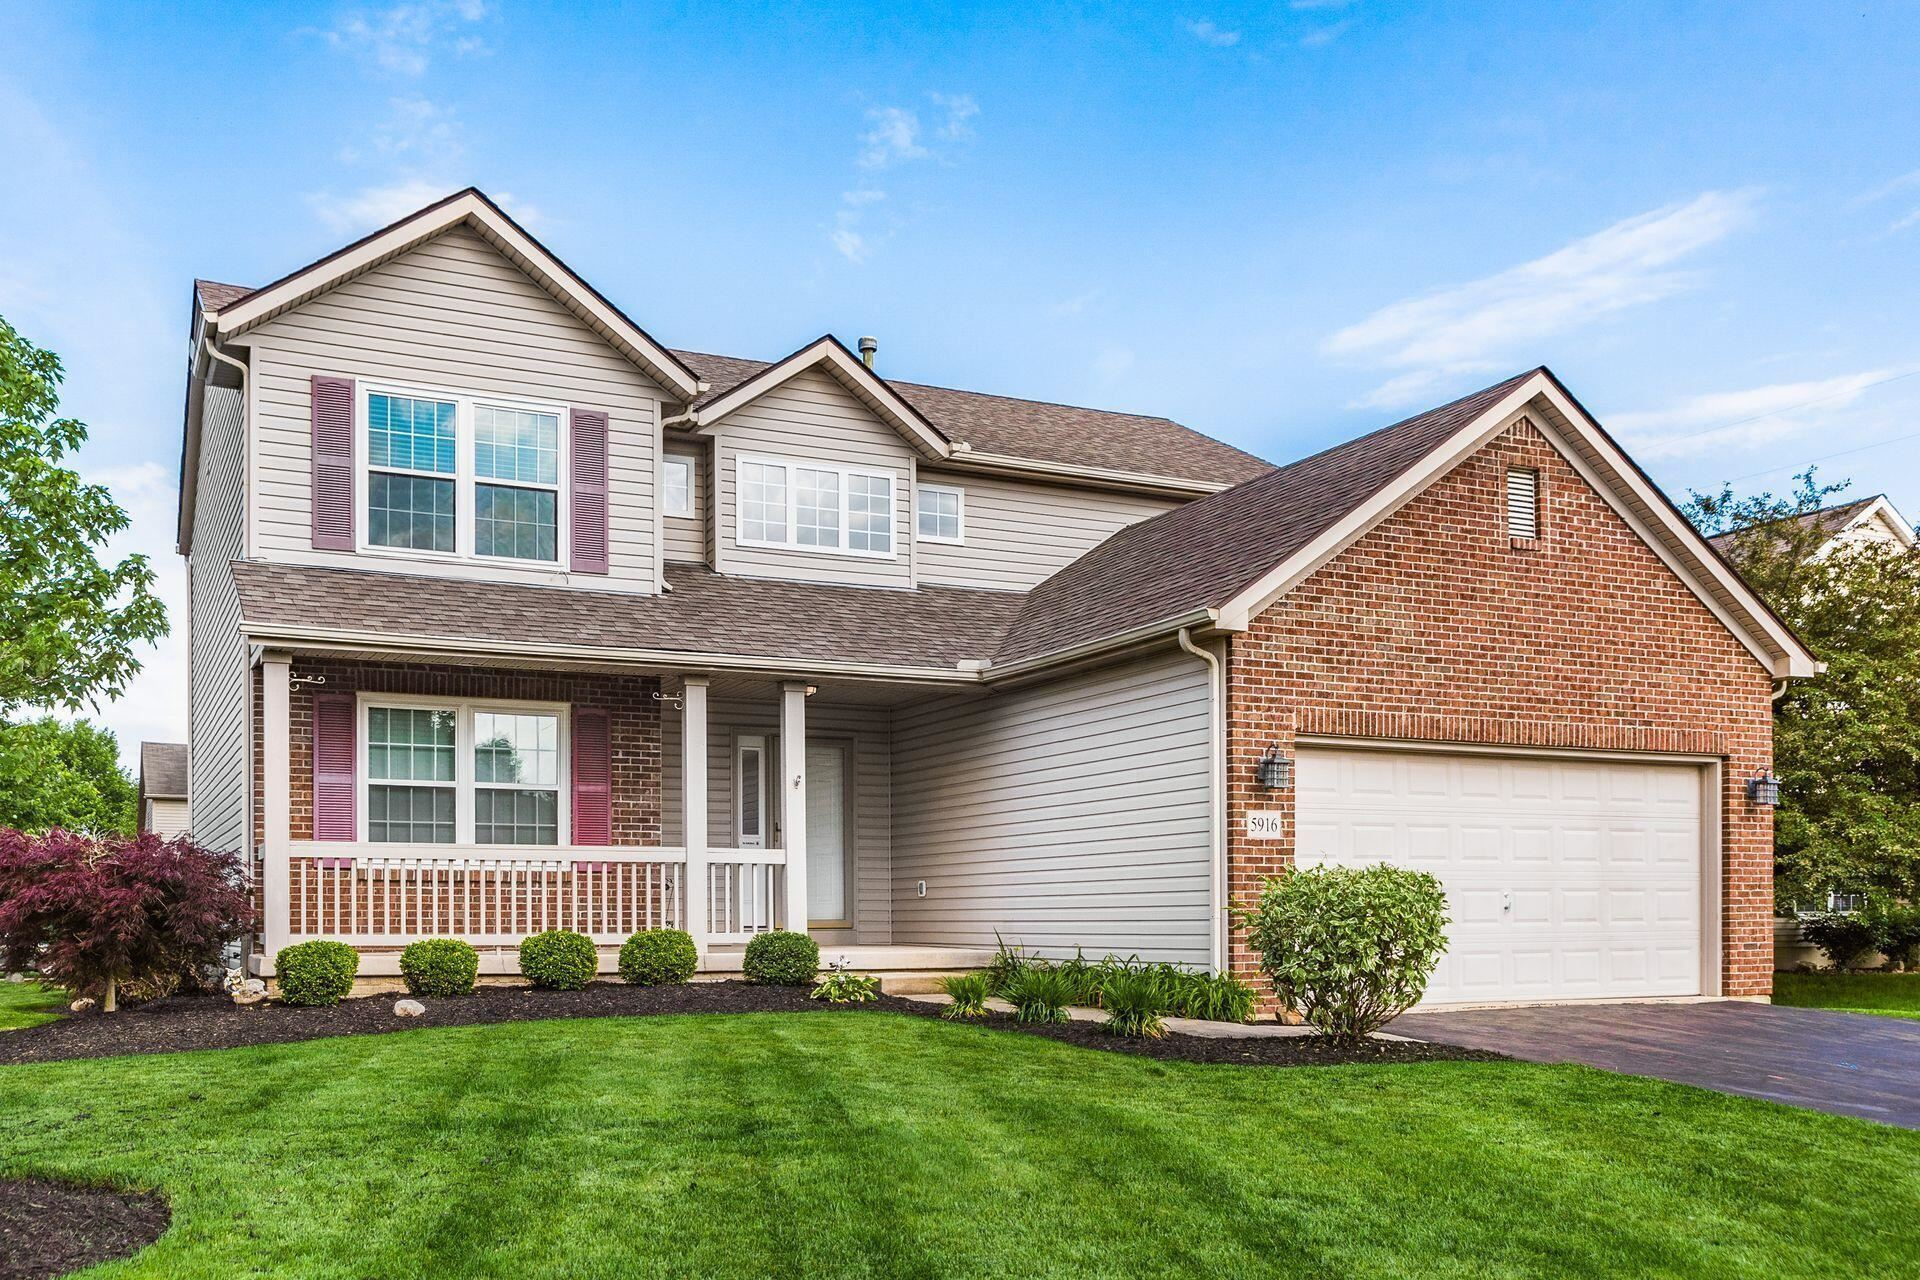 Photo for 5916 Sapphire Court, Grove City, OH 43123 (MLS # 221019832)